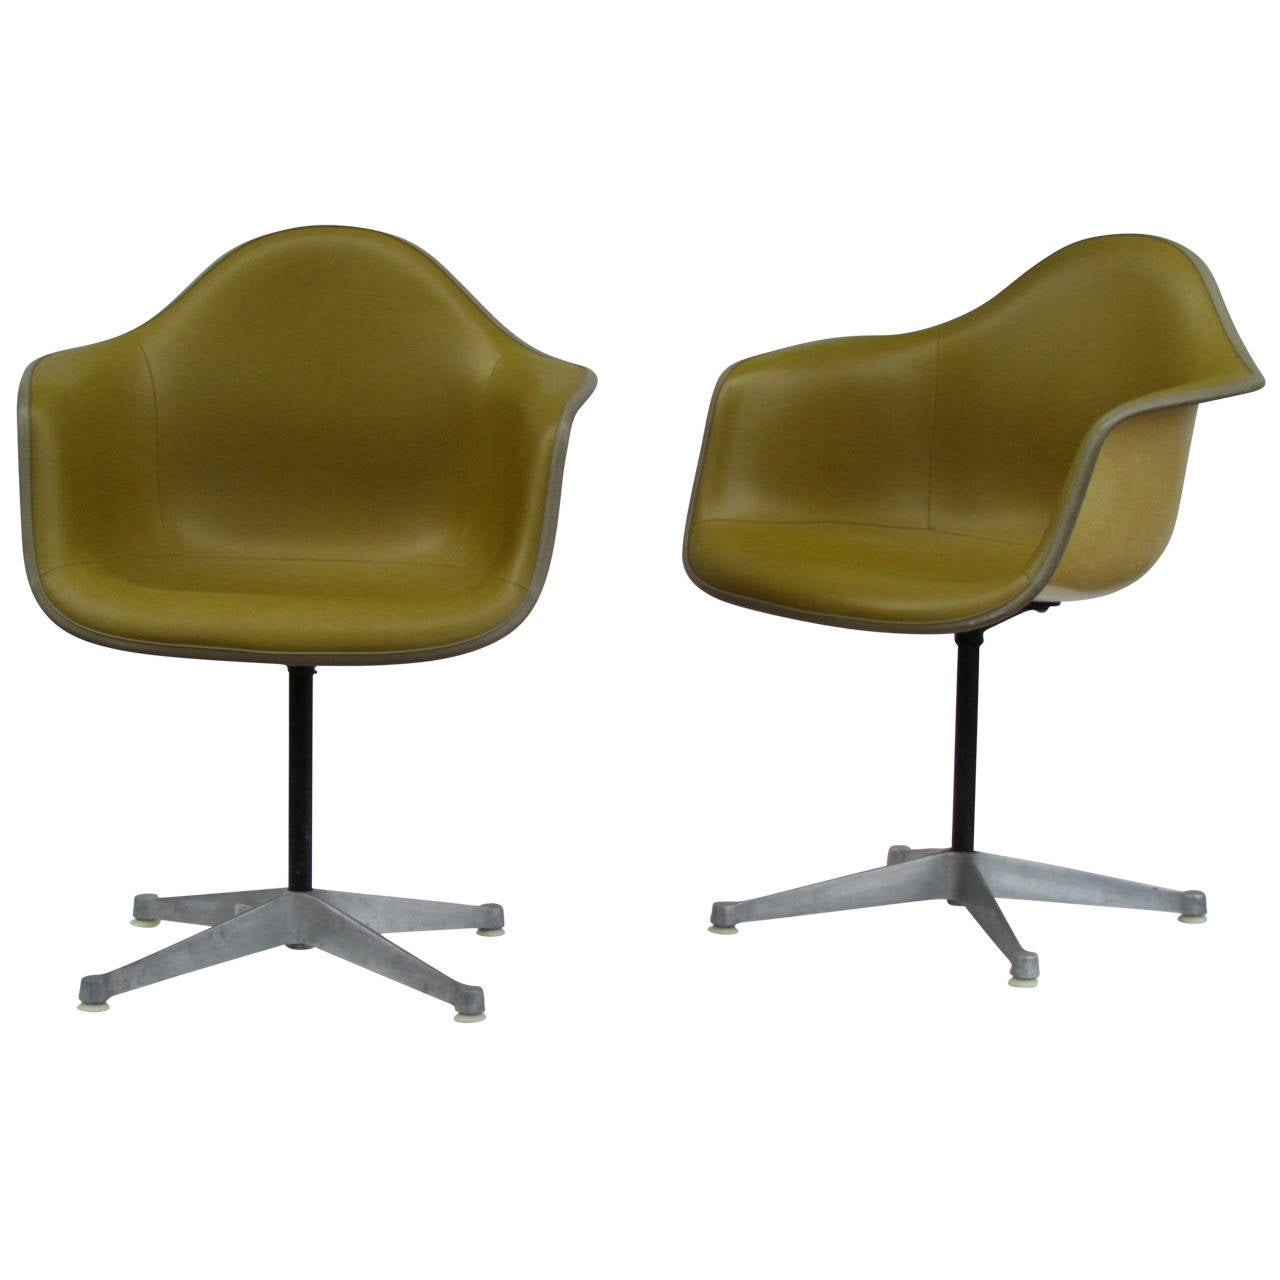 Eames Bucket Swivel Chairs In Alexander Girard Olive